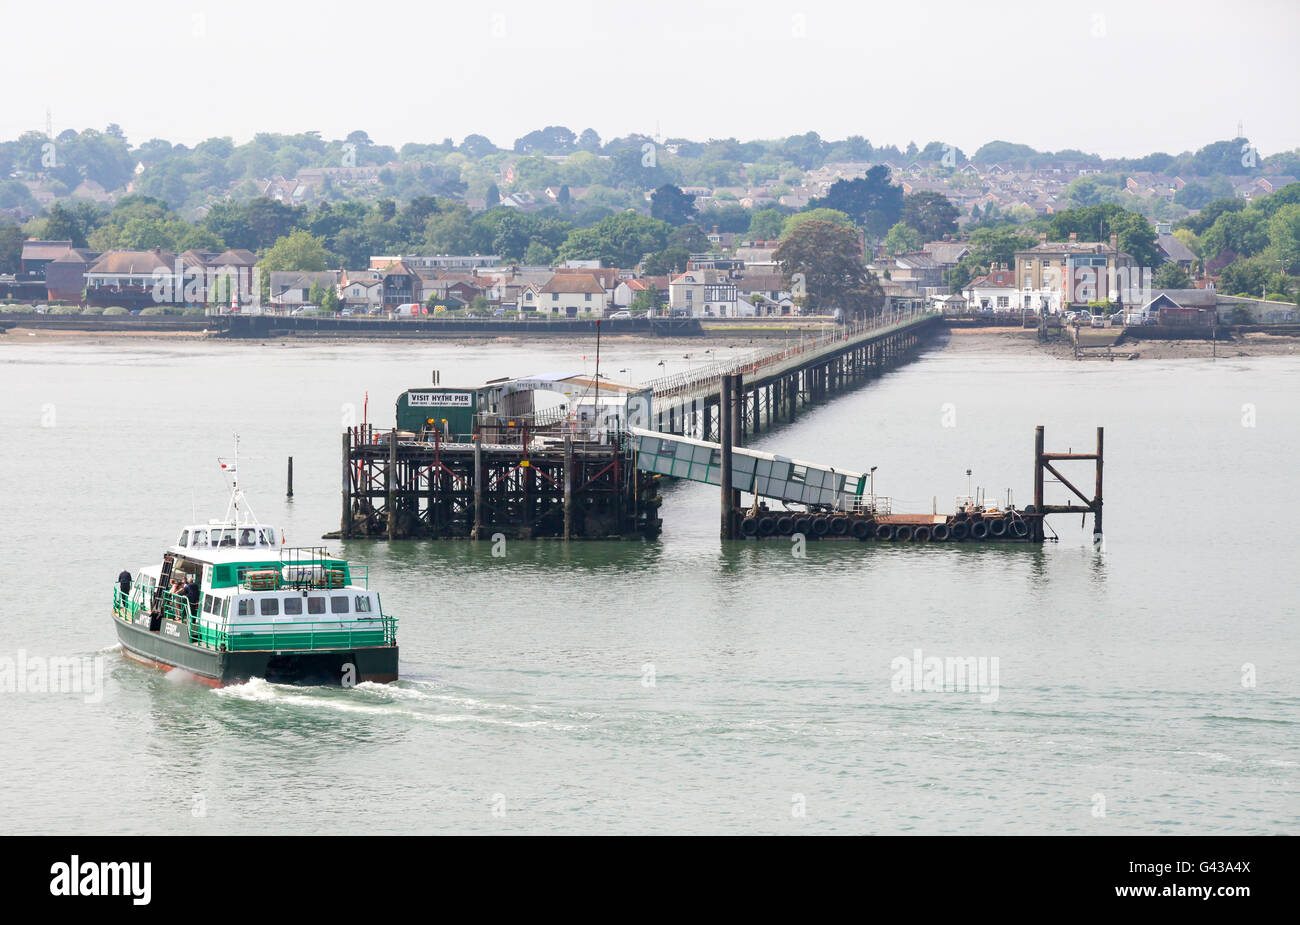 Hythe Ferry arriving at Hythe Pier, Hampshire, UK - Stock Image